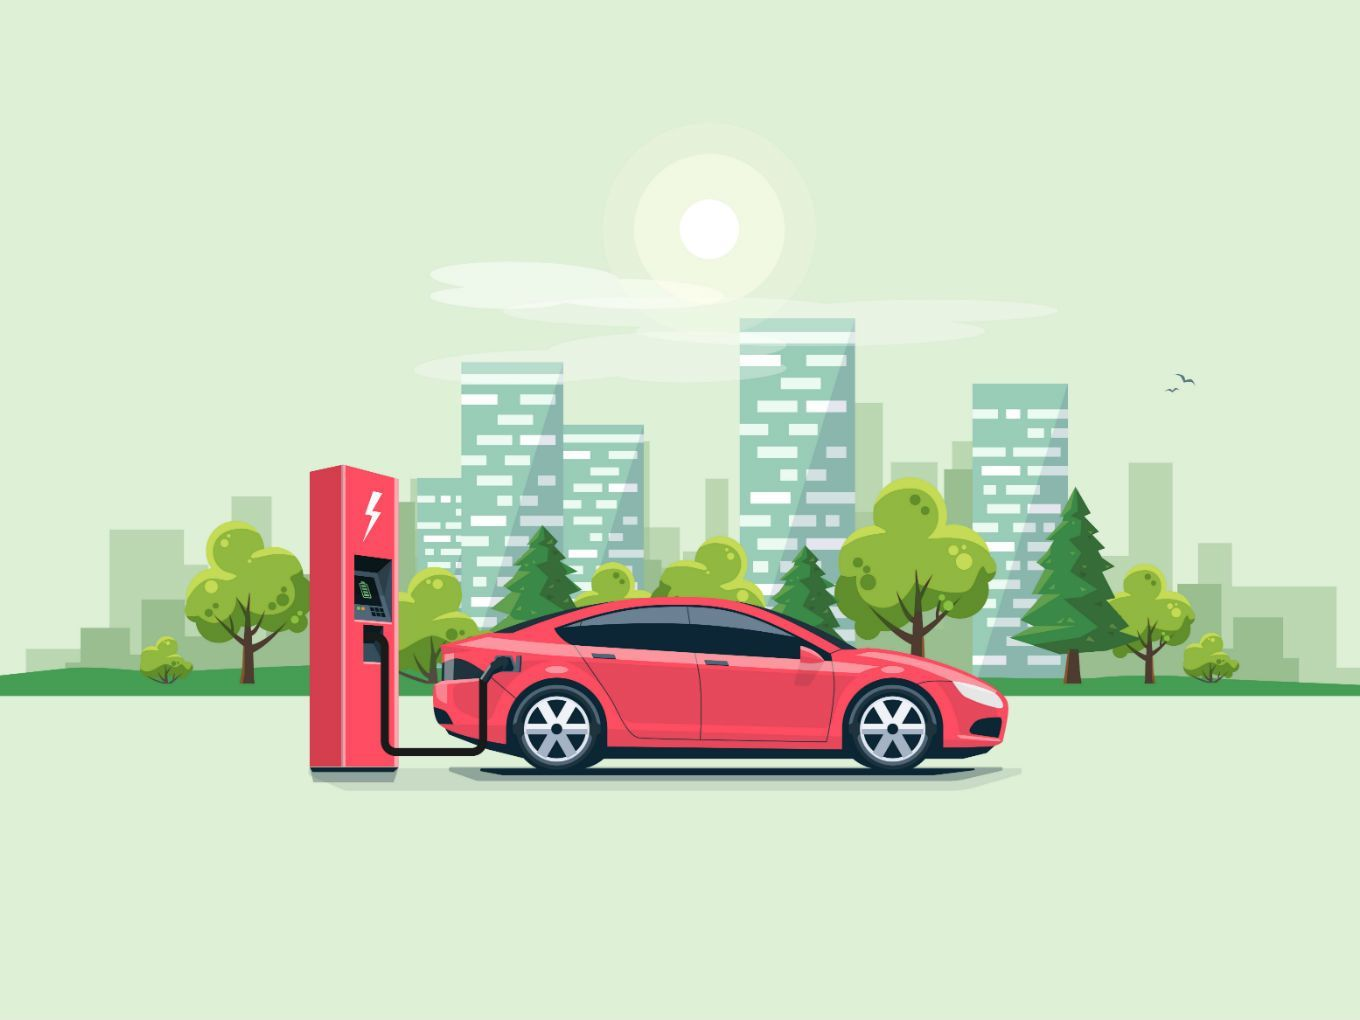 Electric Vehicles This Week: Micromax Cofounder Rahul Sharma To Bet On EV Industry And More